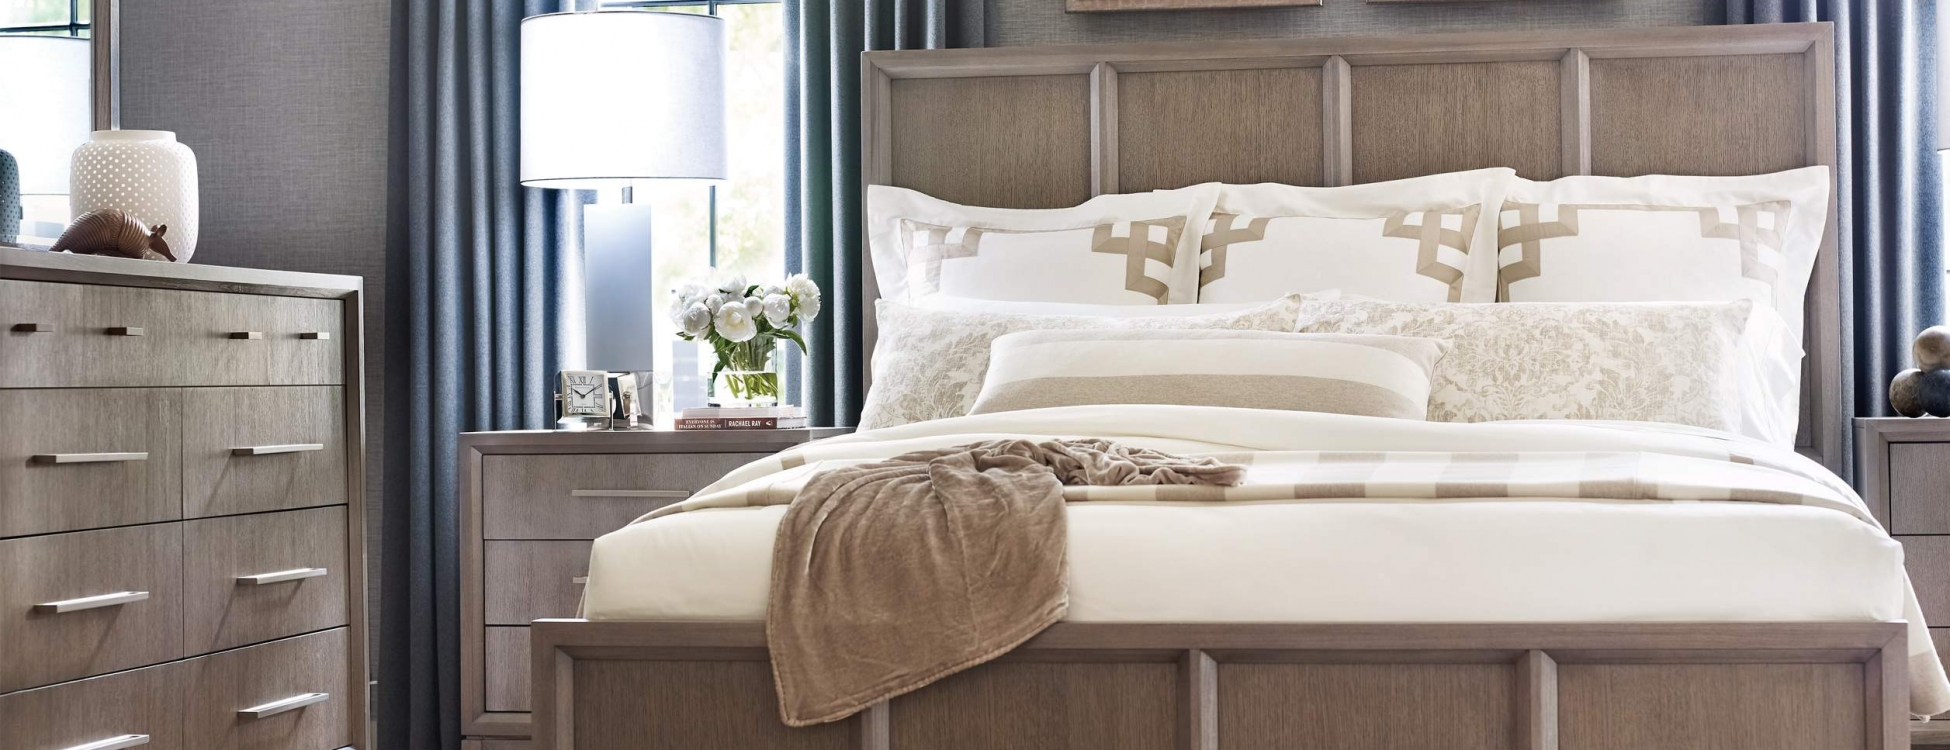 Home & Bedroom Furniture Store in Long Island | One Ten Home Furnishings